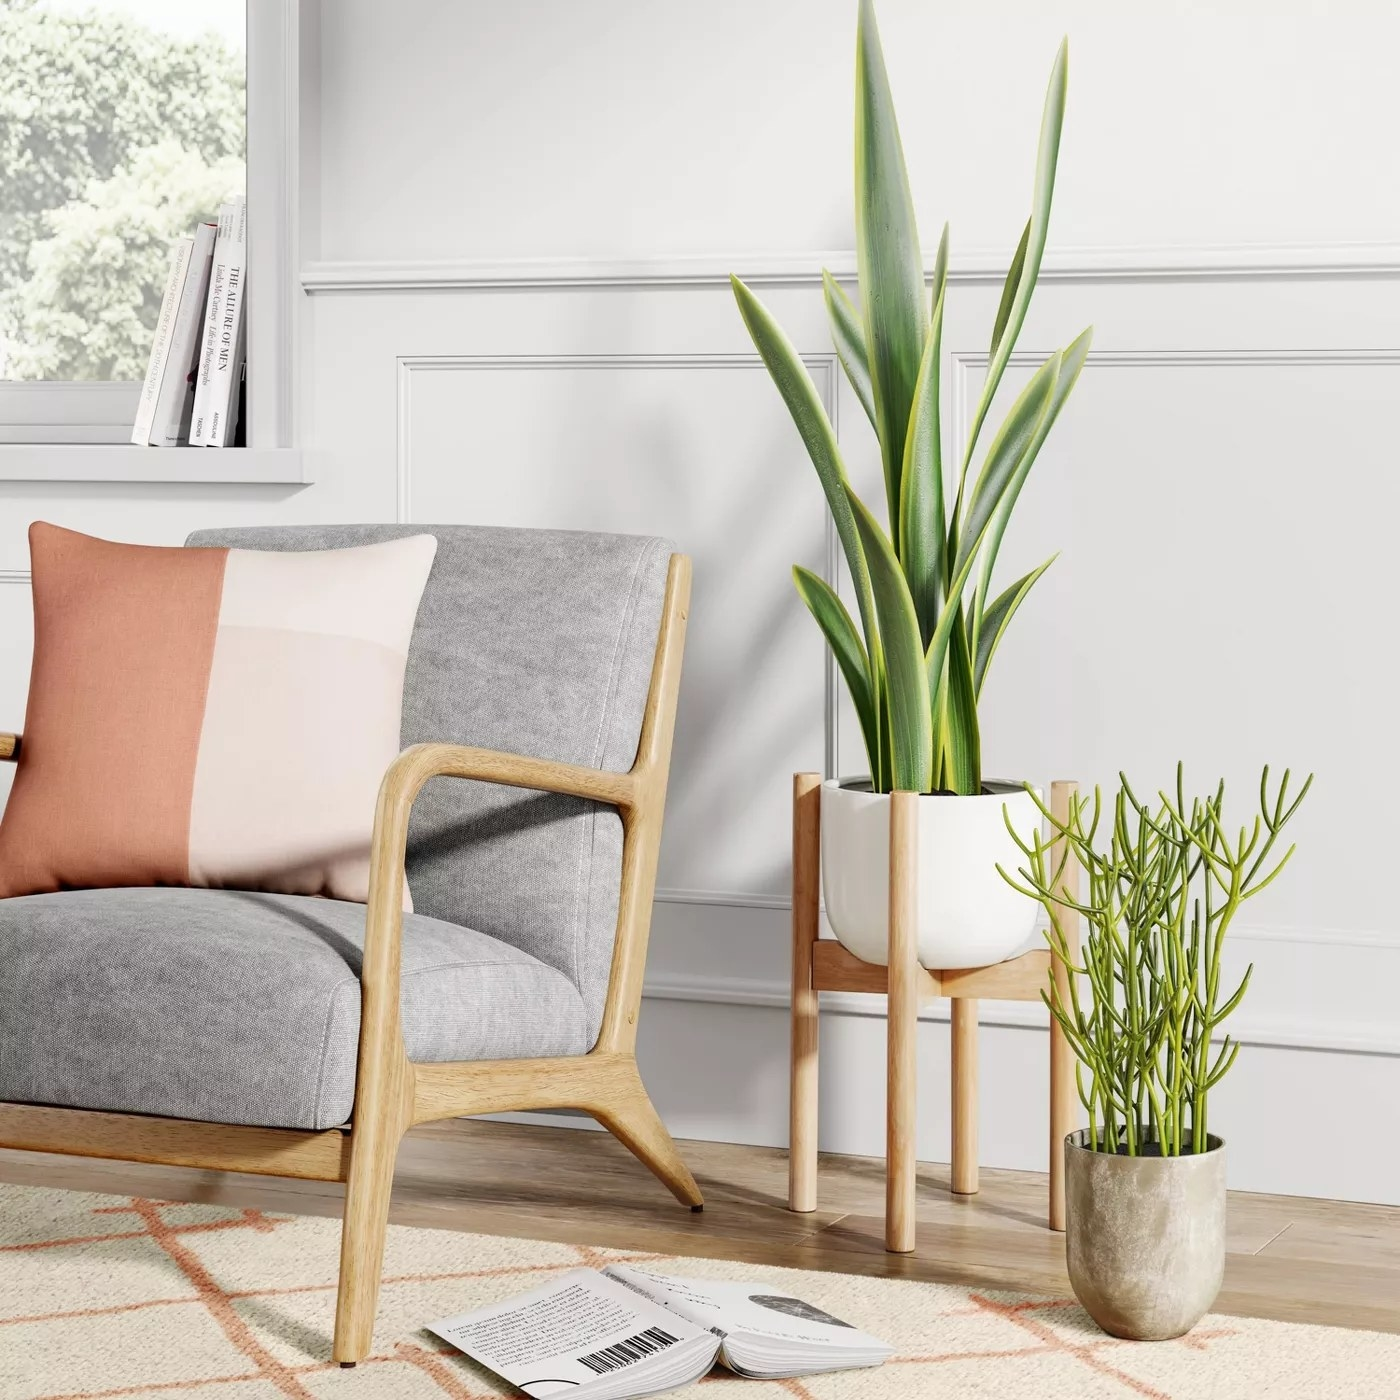 The planters with a wood base and ceramic pot in a living room